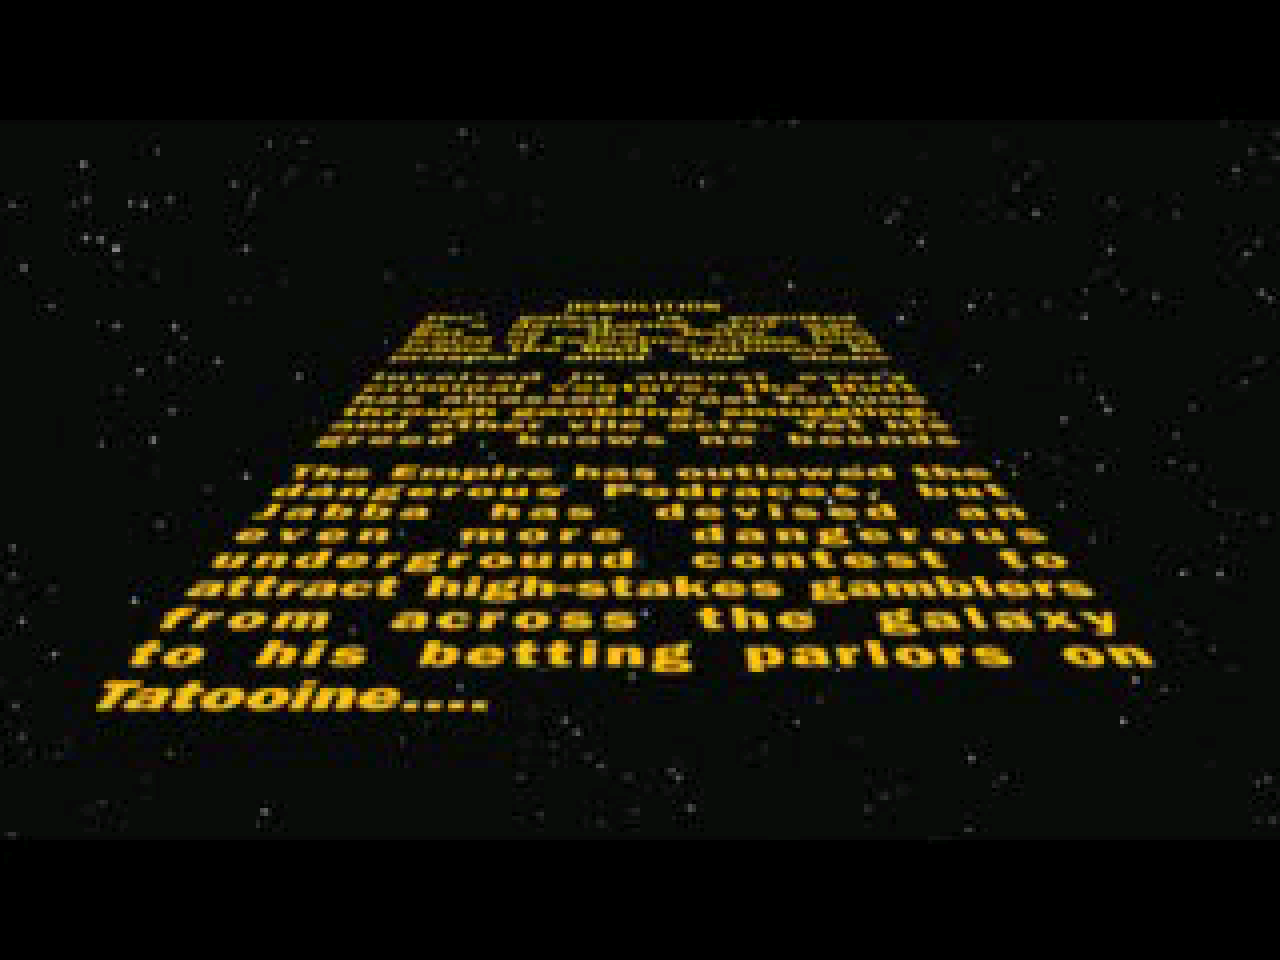 https://s3.eu-west-3.amazonaws.com/games.anthony-dessalles.com/Star Wars Demolition PS1 2020 - Screenshots/Star Wars Demolition-201125-204750.png